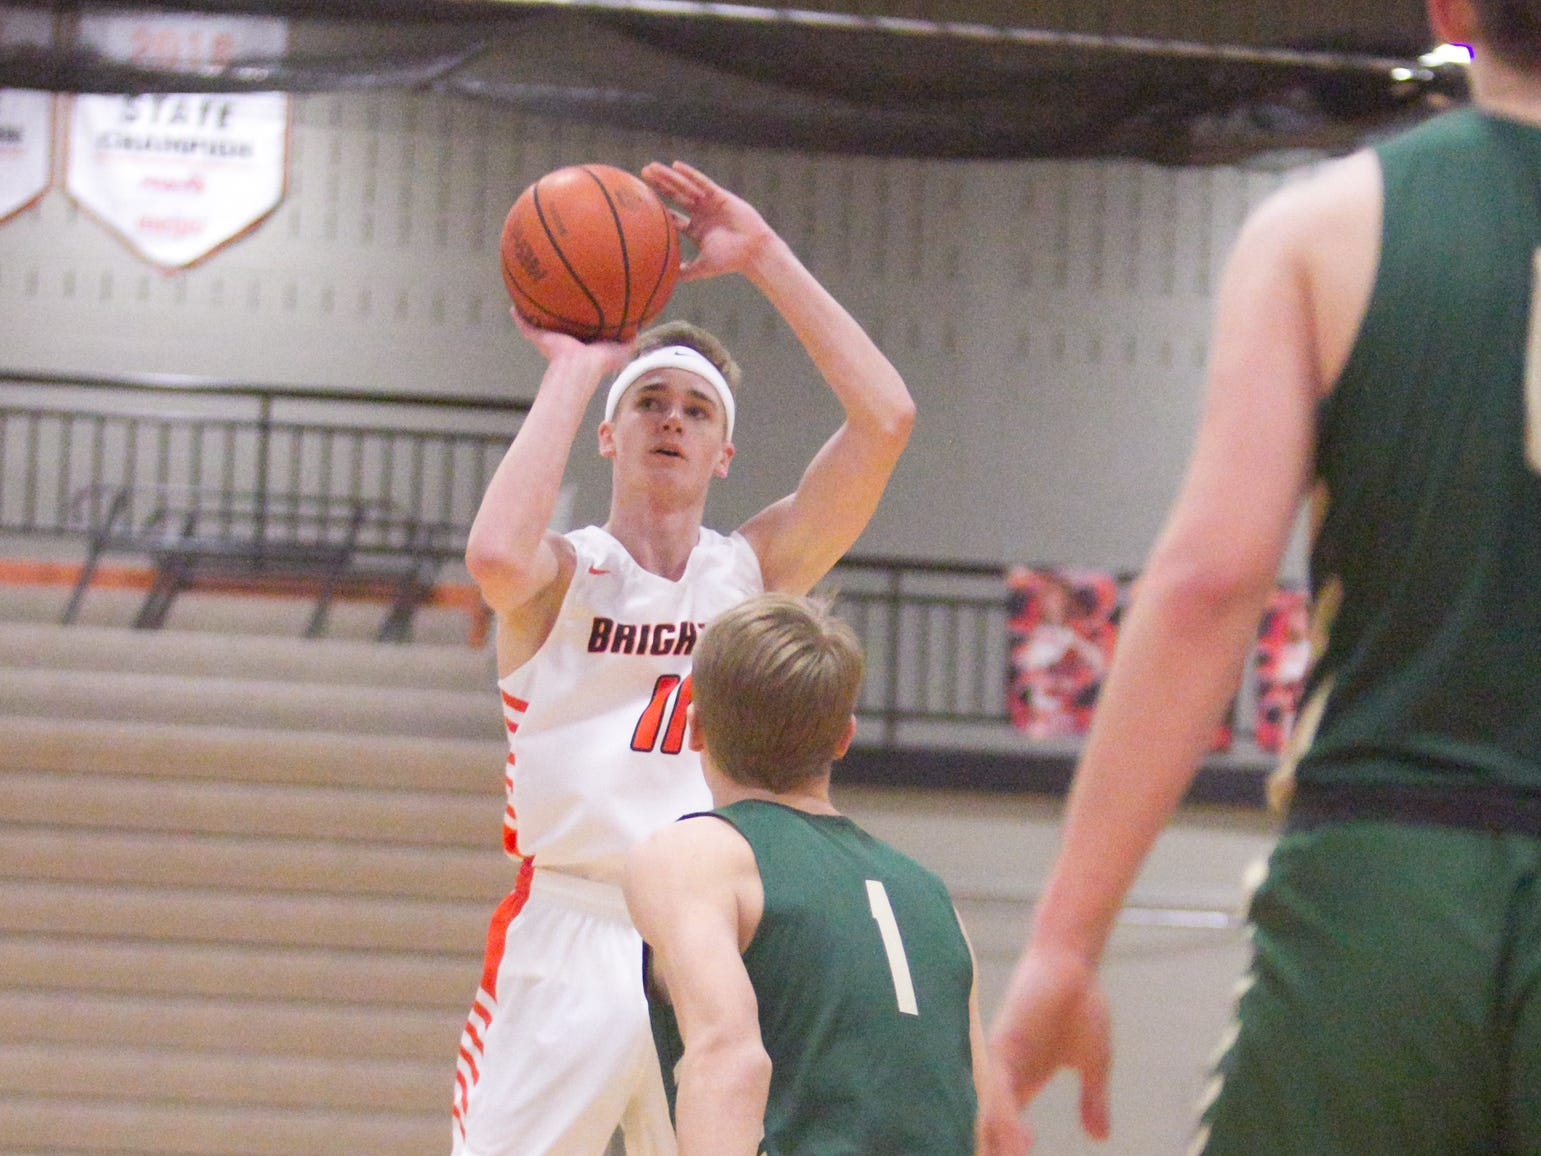 Jacob Dunn of Brighton hits a three-pointer in the game against Howell Tuesday, Jan. 8, 2019.